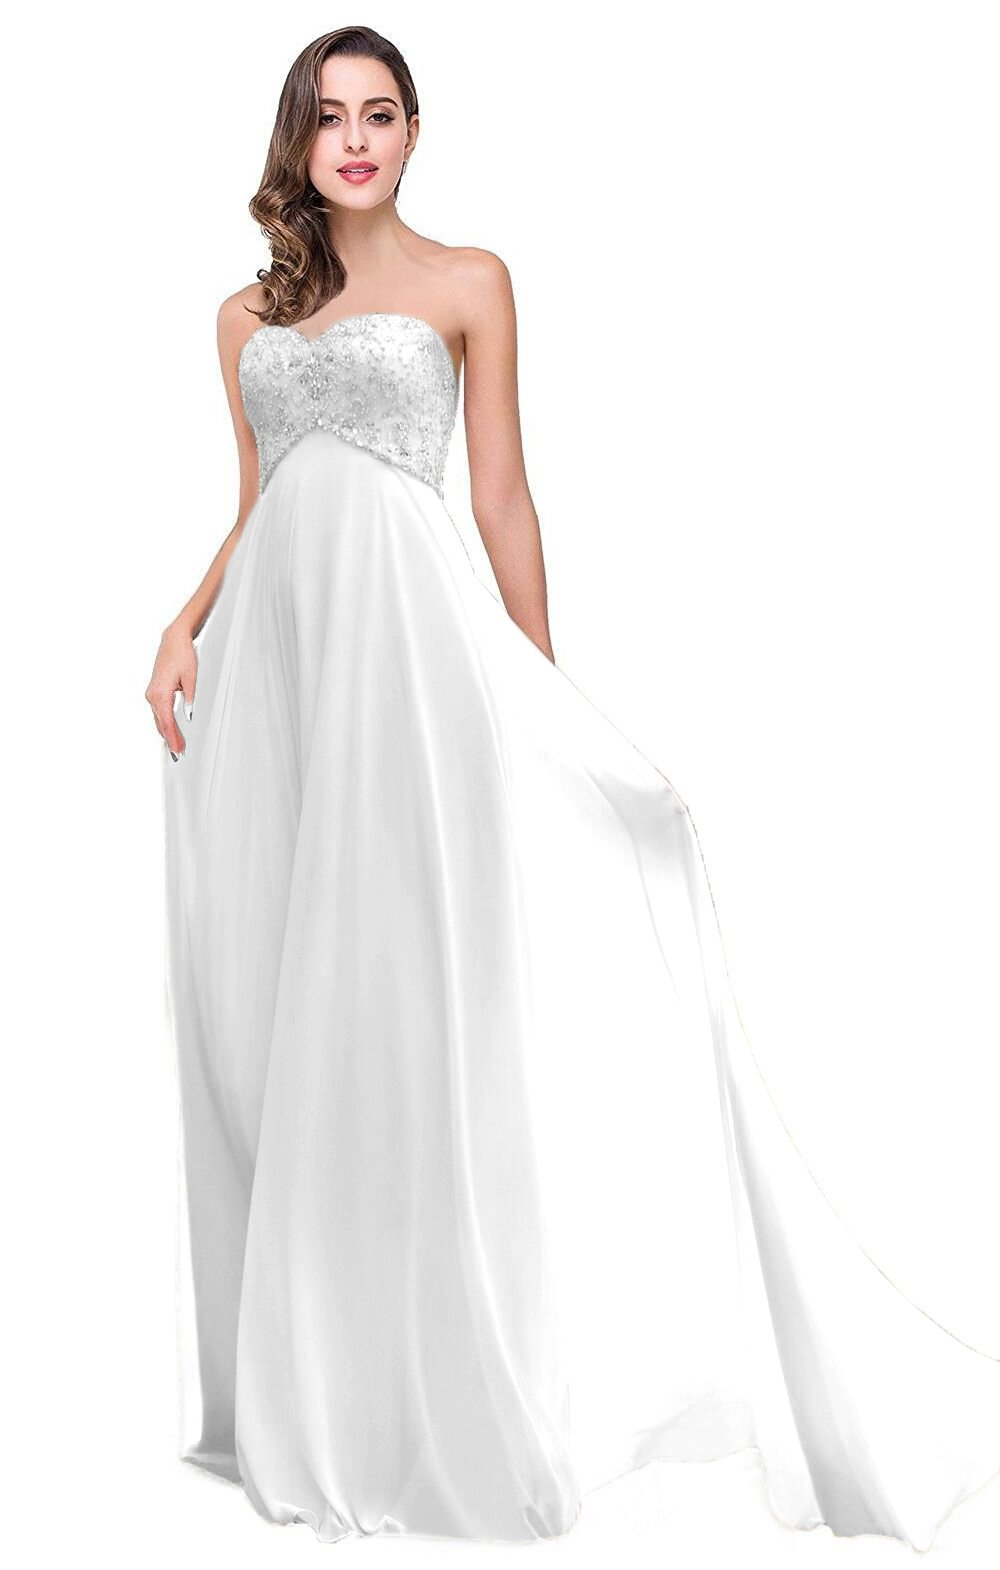 Best Rated in Wedding Dresses & Helpful Customer Reviews - Amazon.com